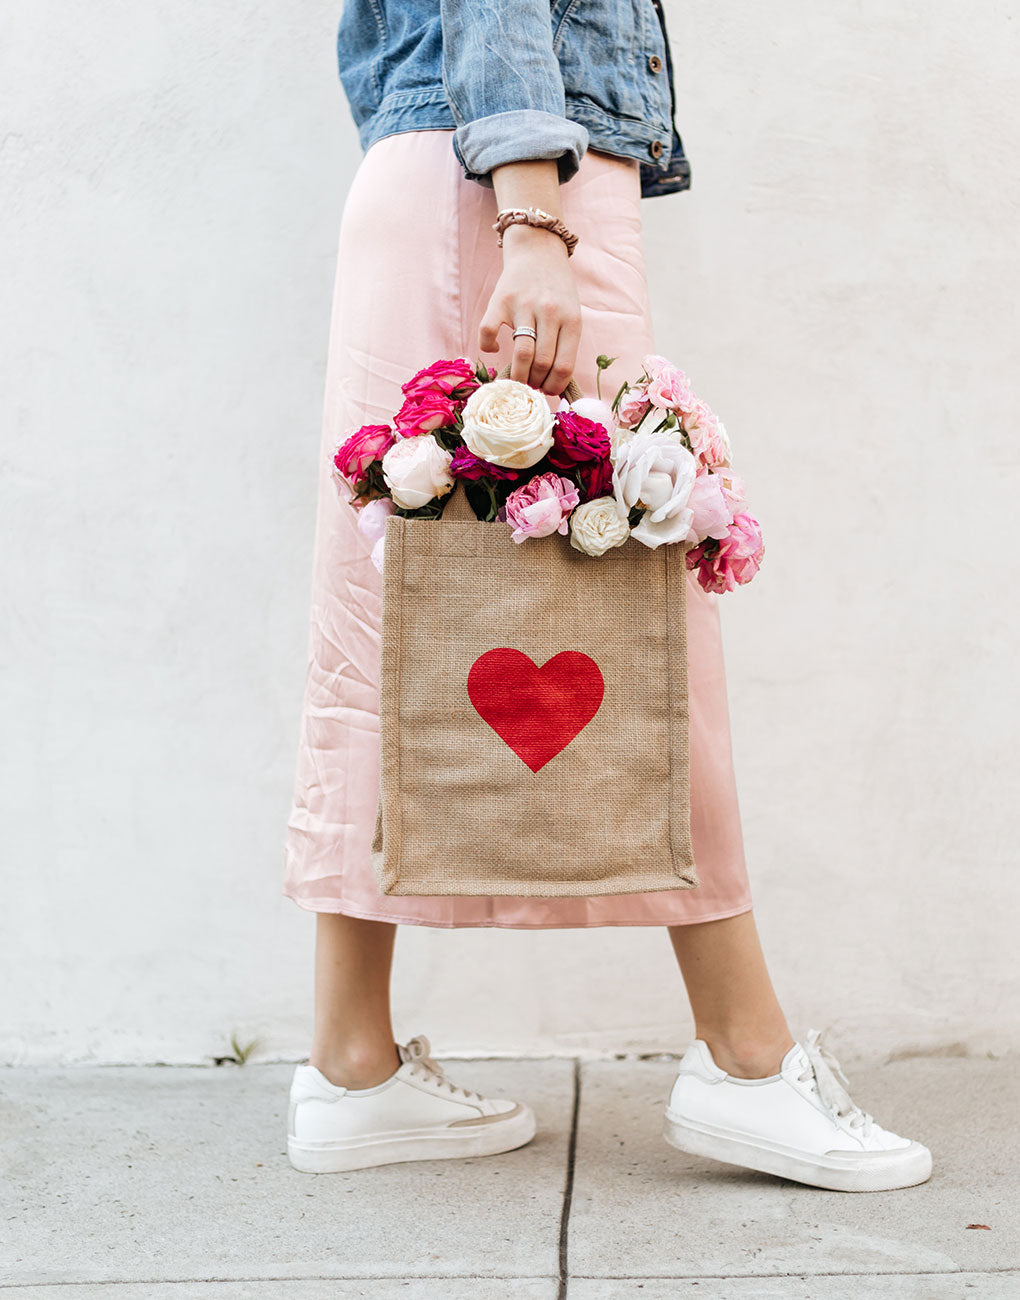 Red Heart Medium Gift Tote Bag with Flowers inside | The Little Market